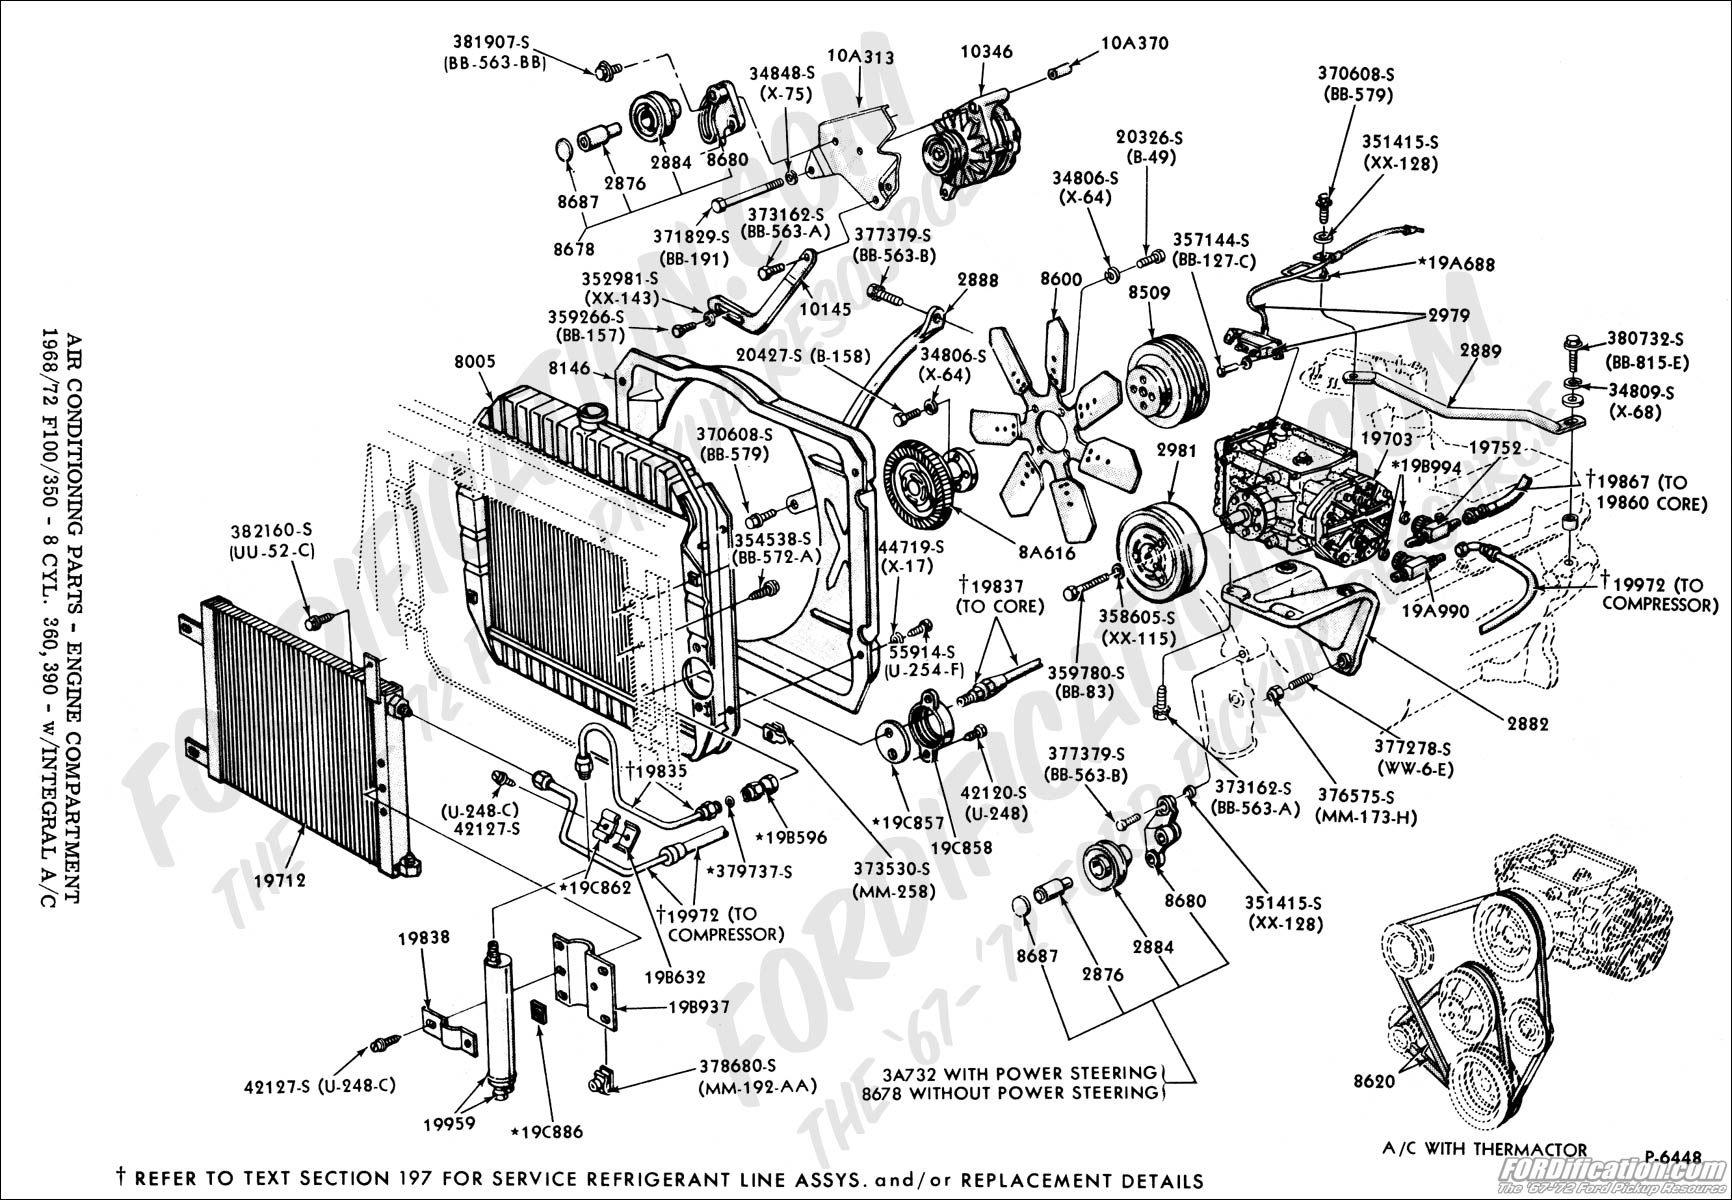 1987 chevy silverado wiring diagram 1987 discover your wiring nissan pathfinder air conditioner wiring diagram 1987 chevy silverado